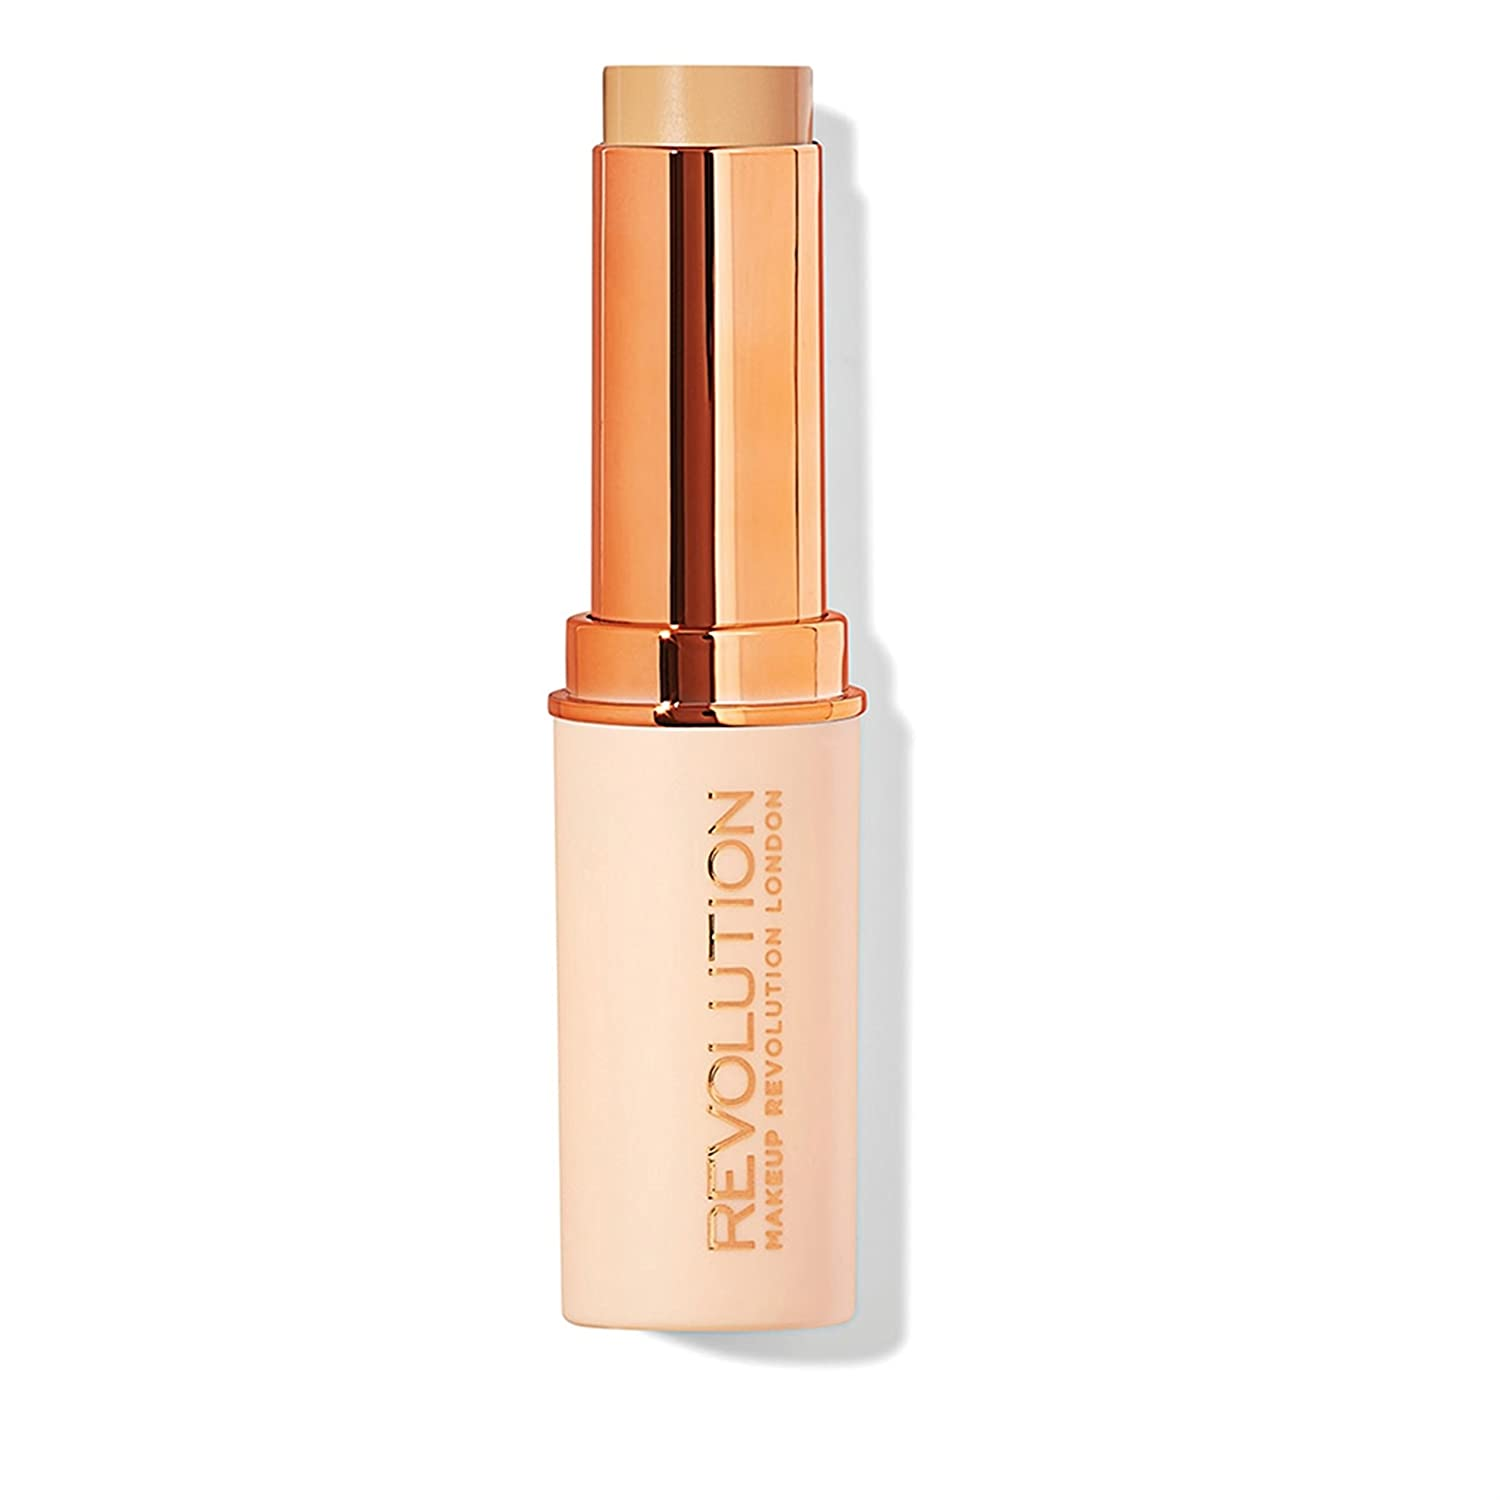 Makeup Revolution Fast Base Stick Foundation F9, Brown, 30g